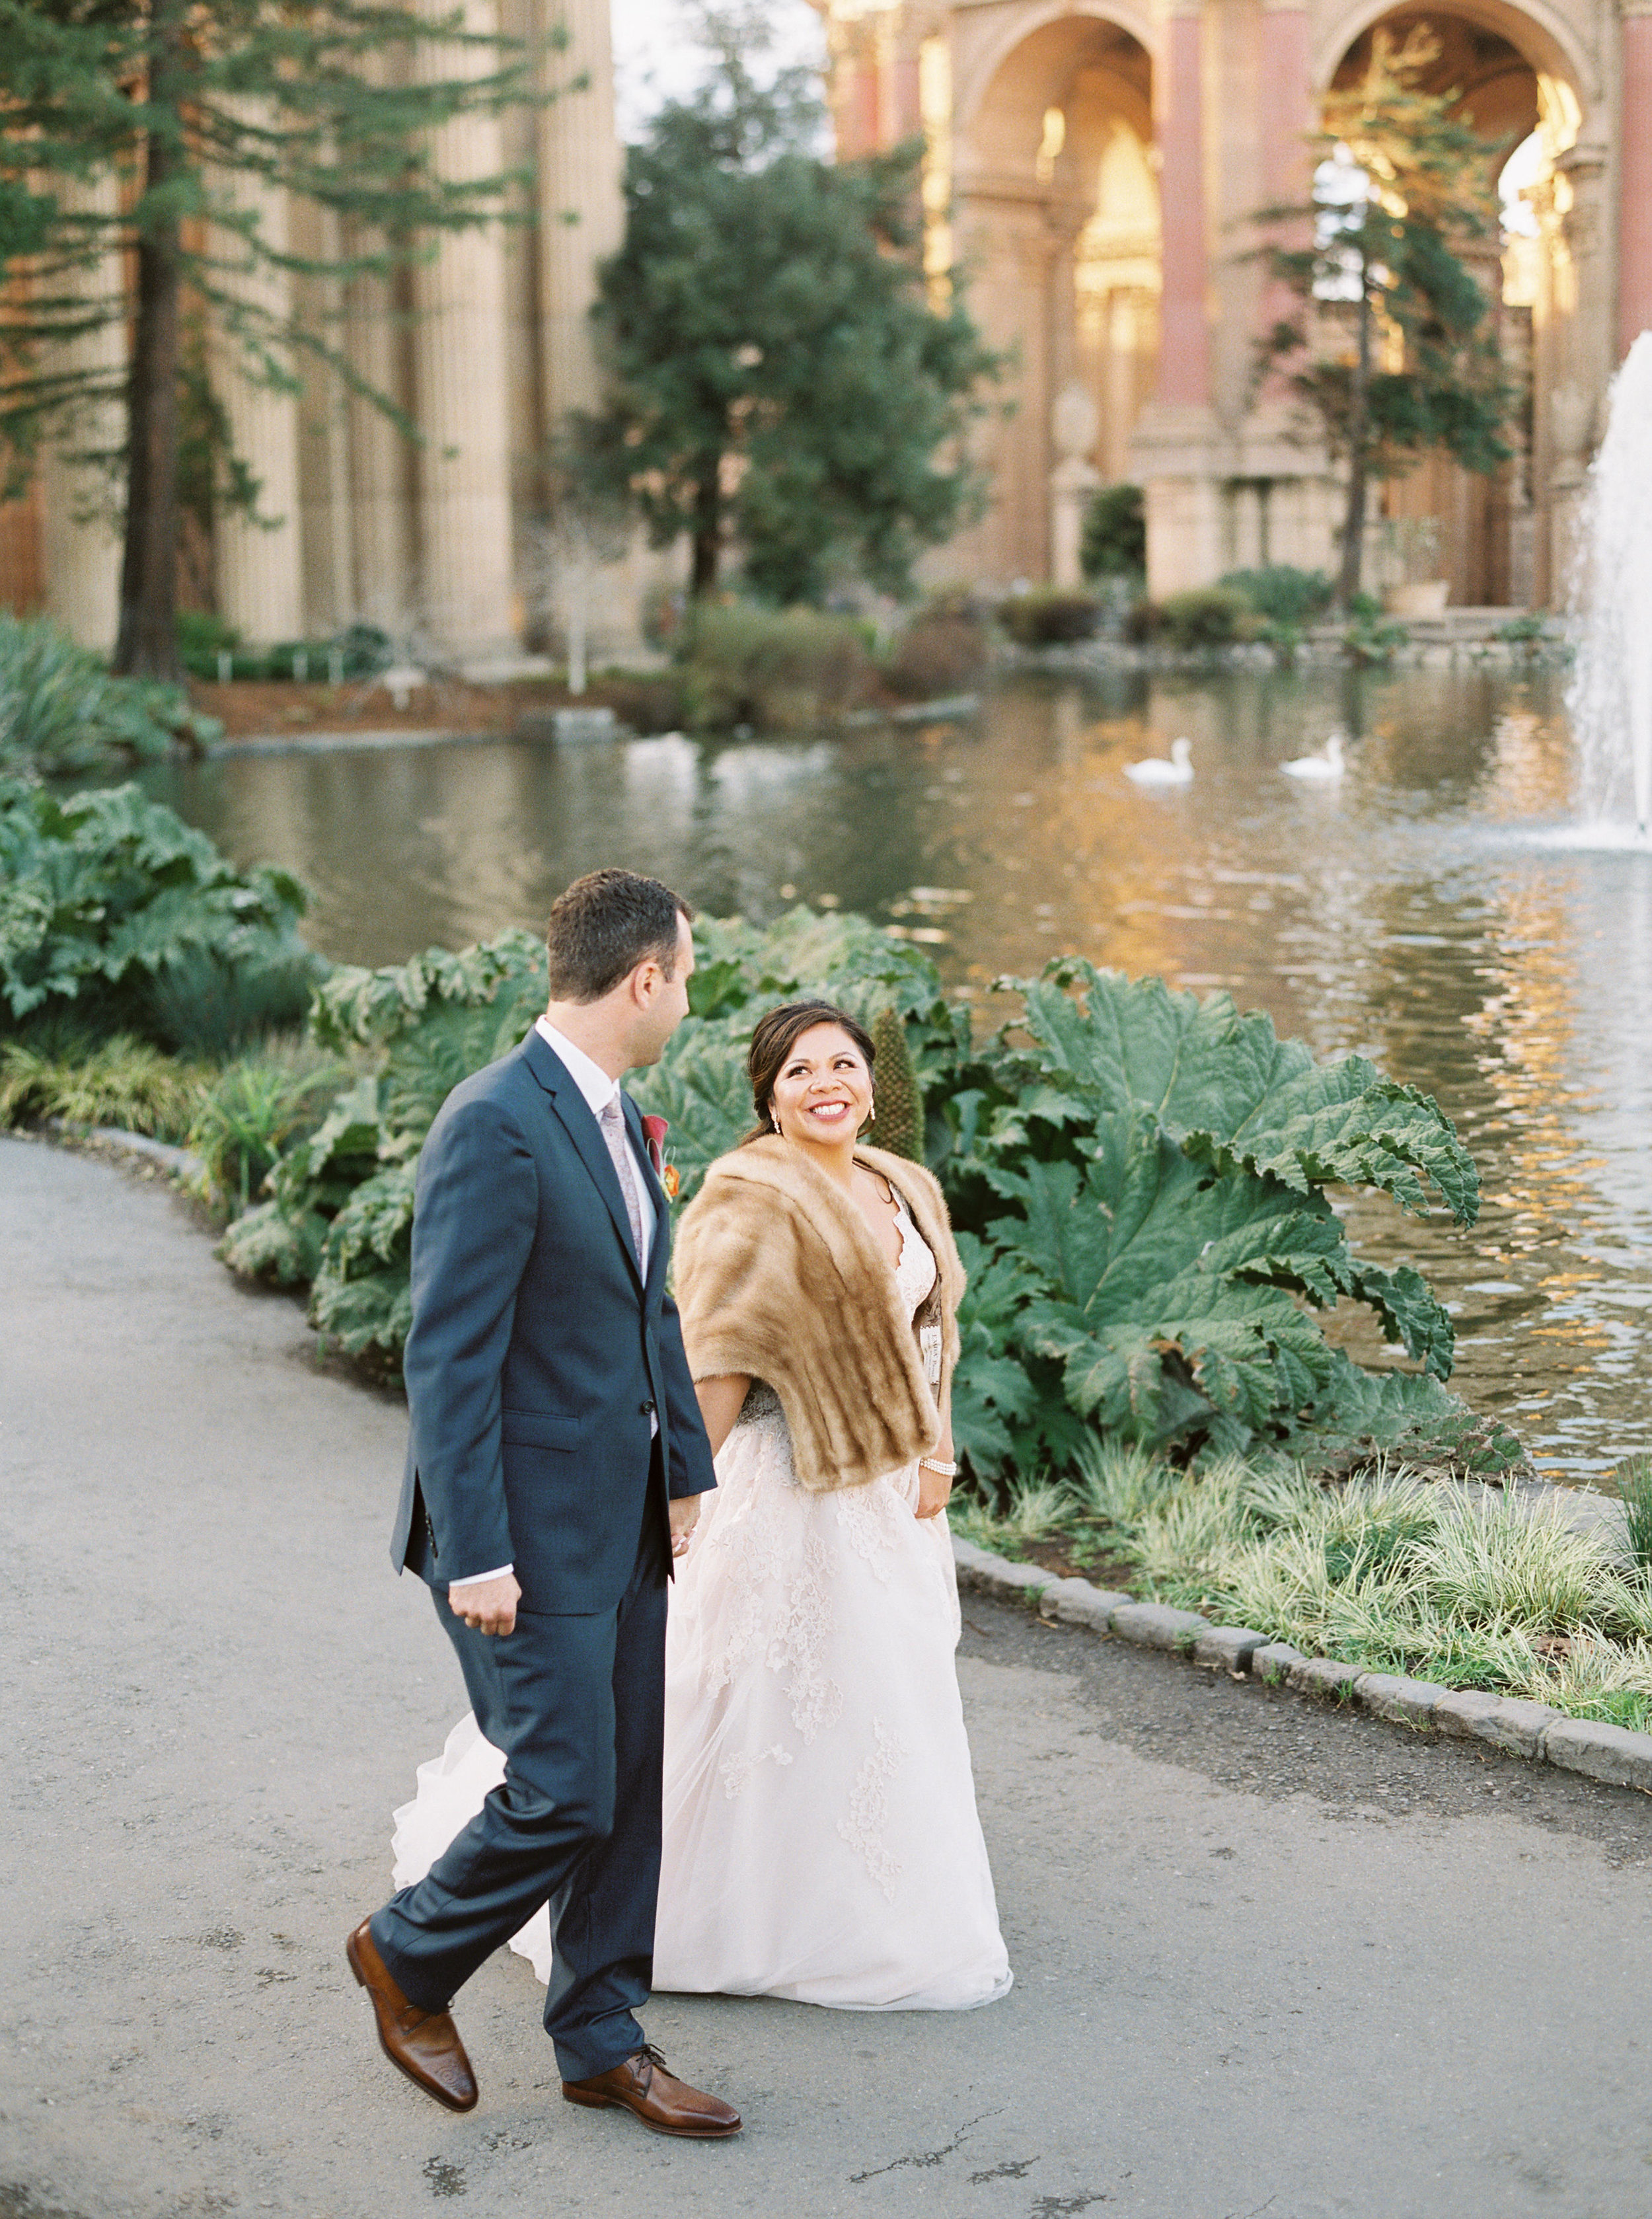 style-inspired-wedding-at-firehouse-8-in-san-francisco-160.jpg